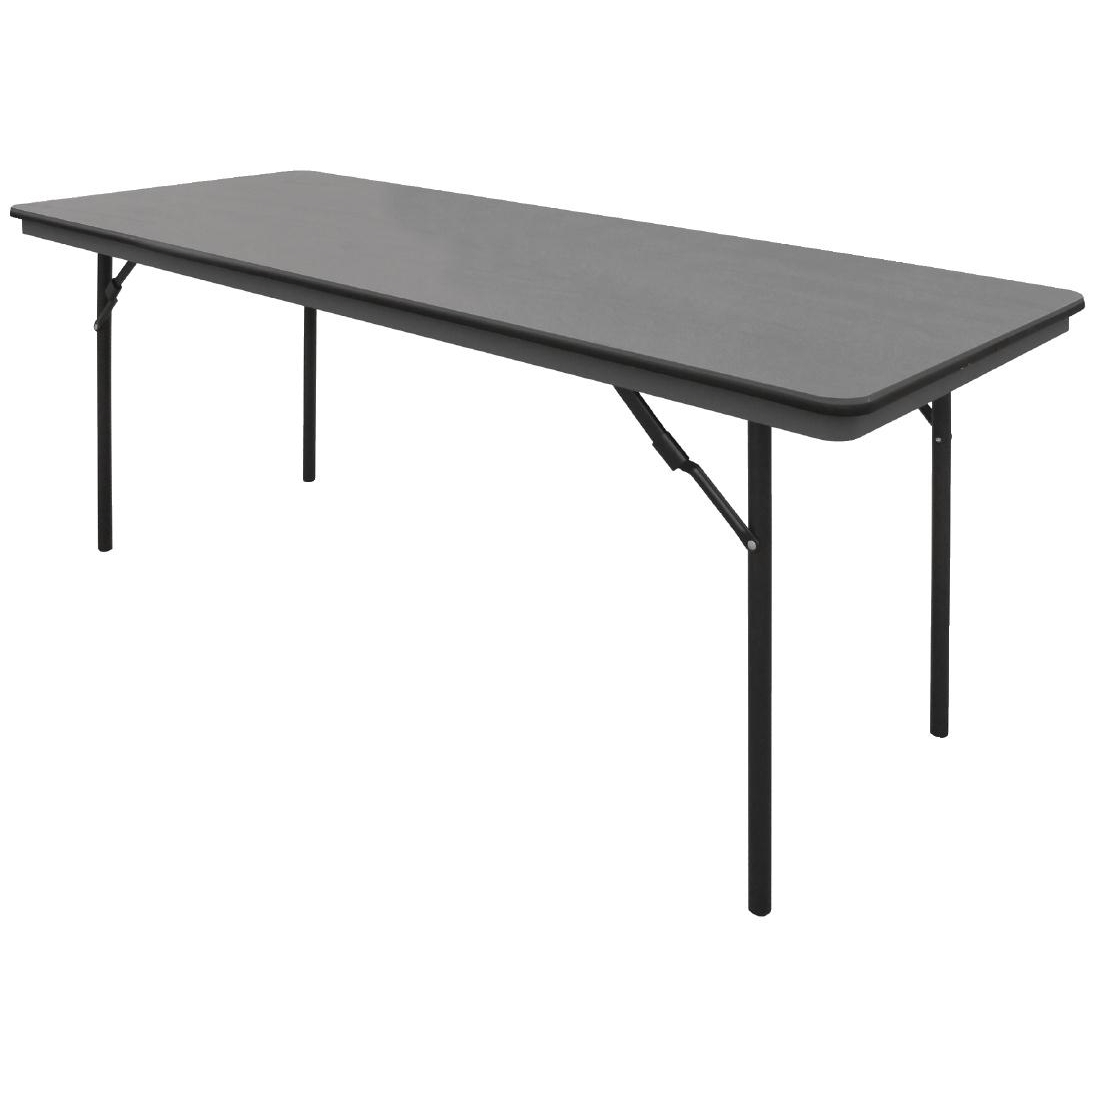 Bolero ABS Folding Banquet Rectangular Table 6ft